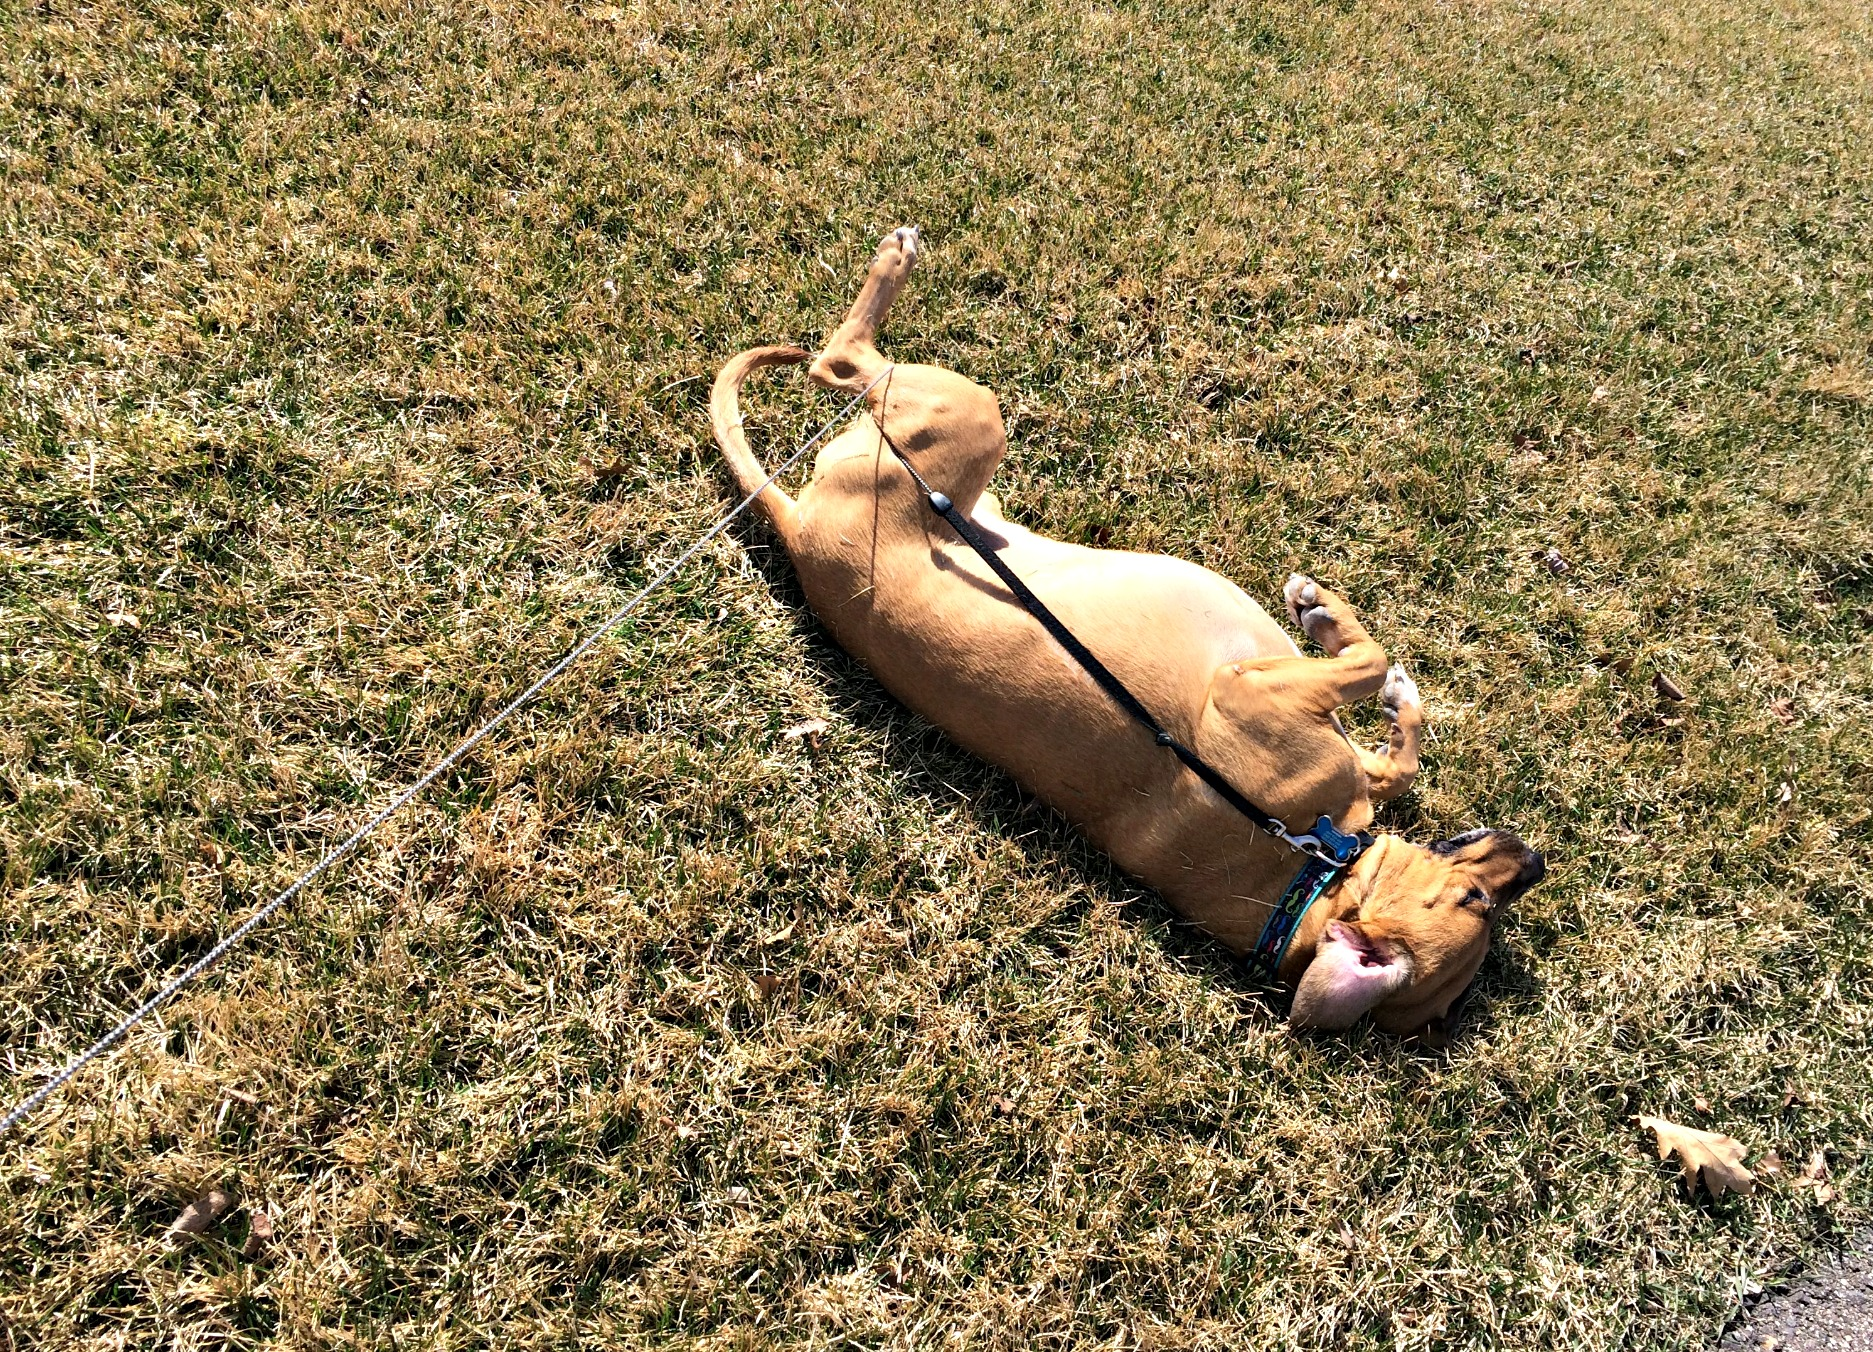 roadie tangled and rolling in the grass